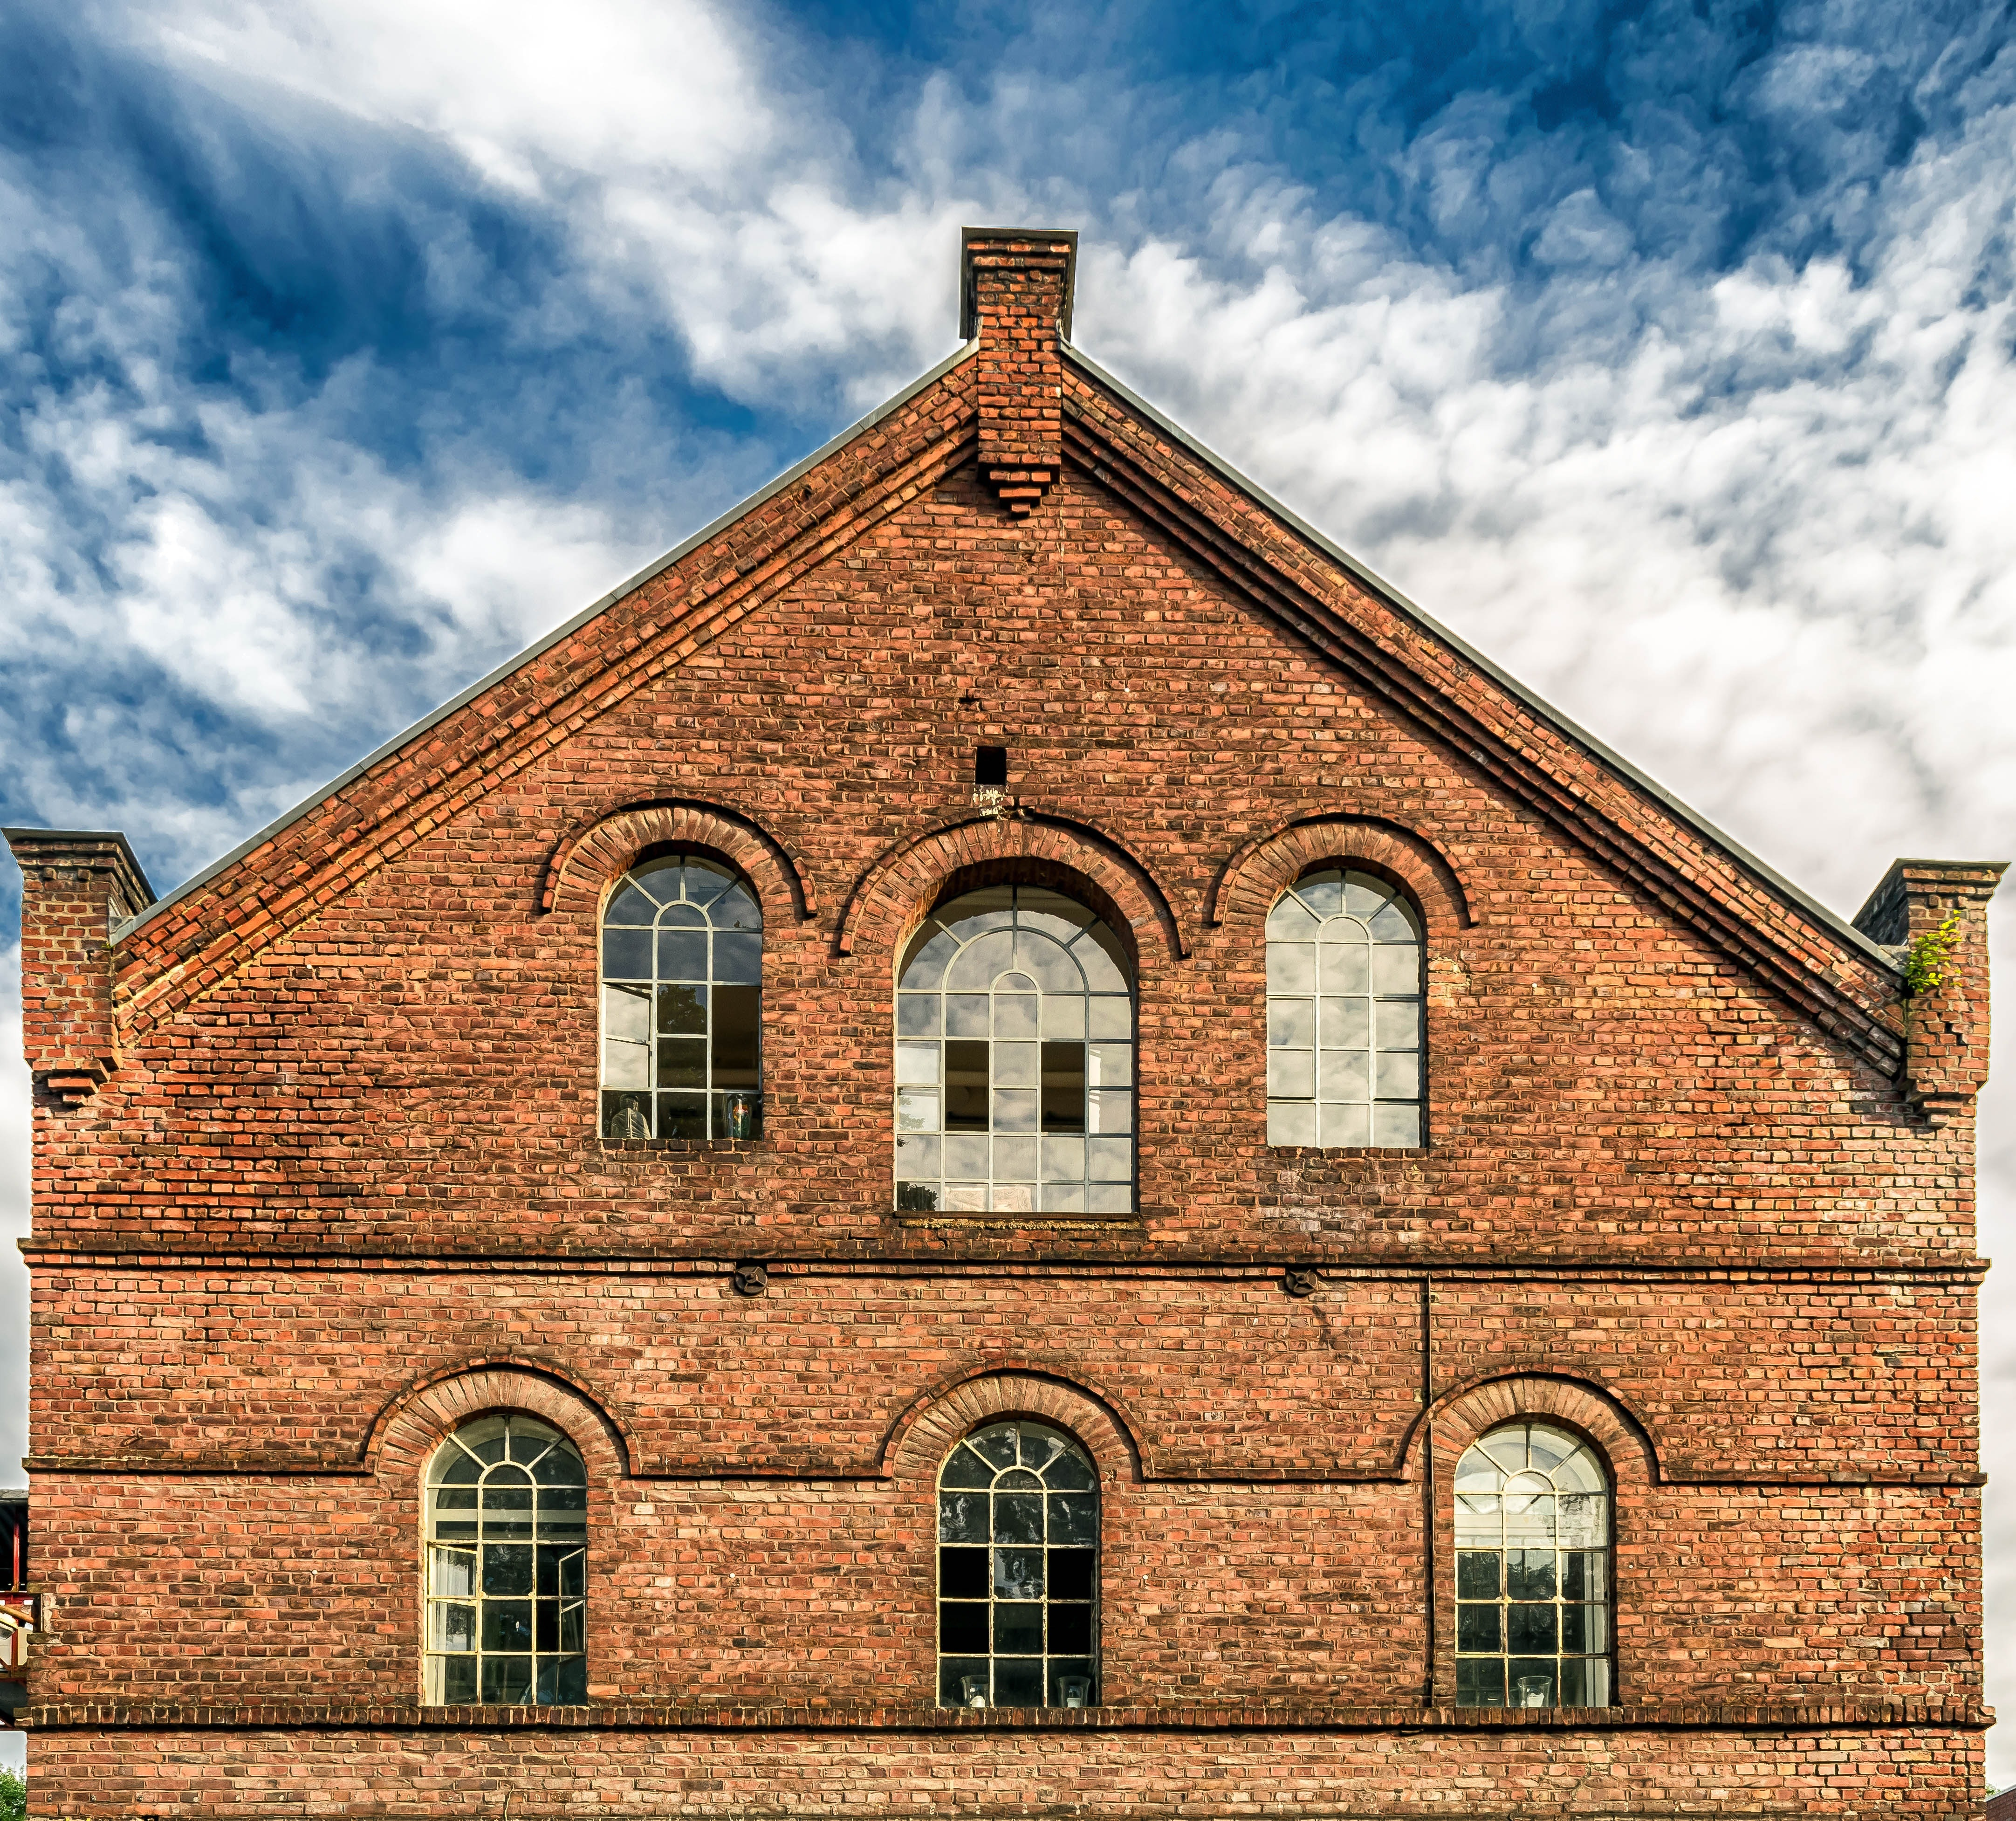 Low Angle View of Historic Building Against Sky, Architecture, Home, Wall, Traditional, HQ Photo